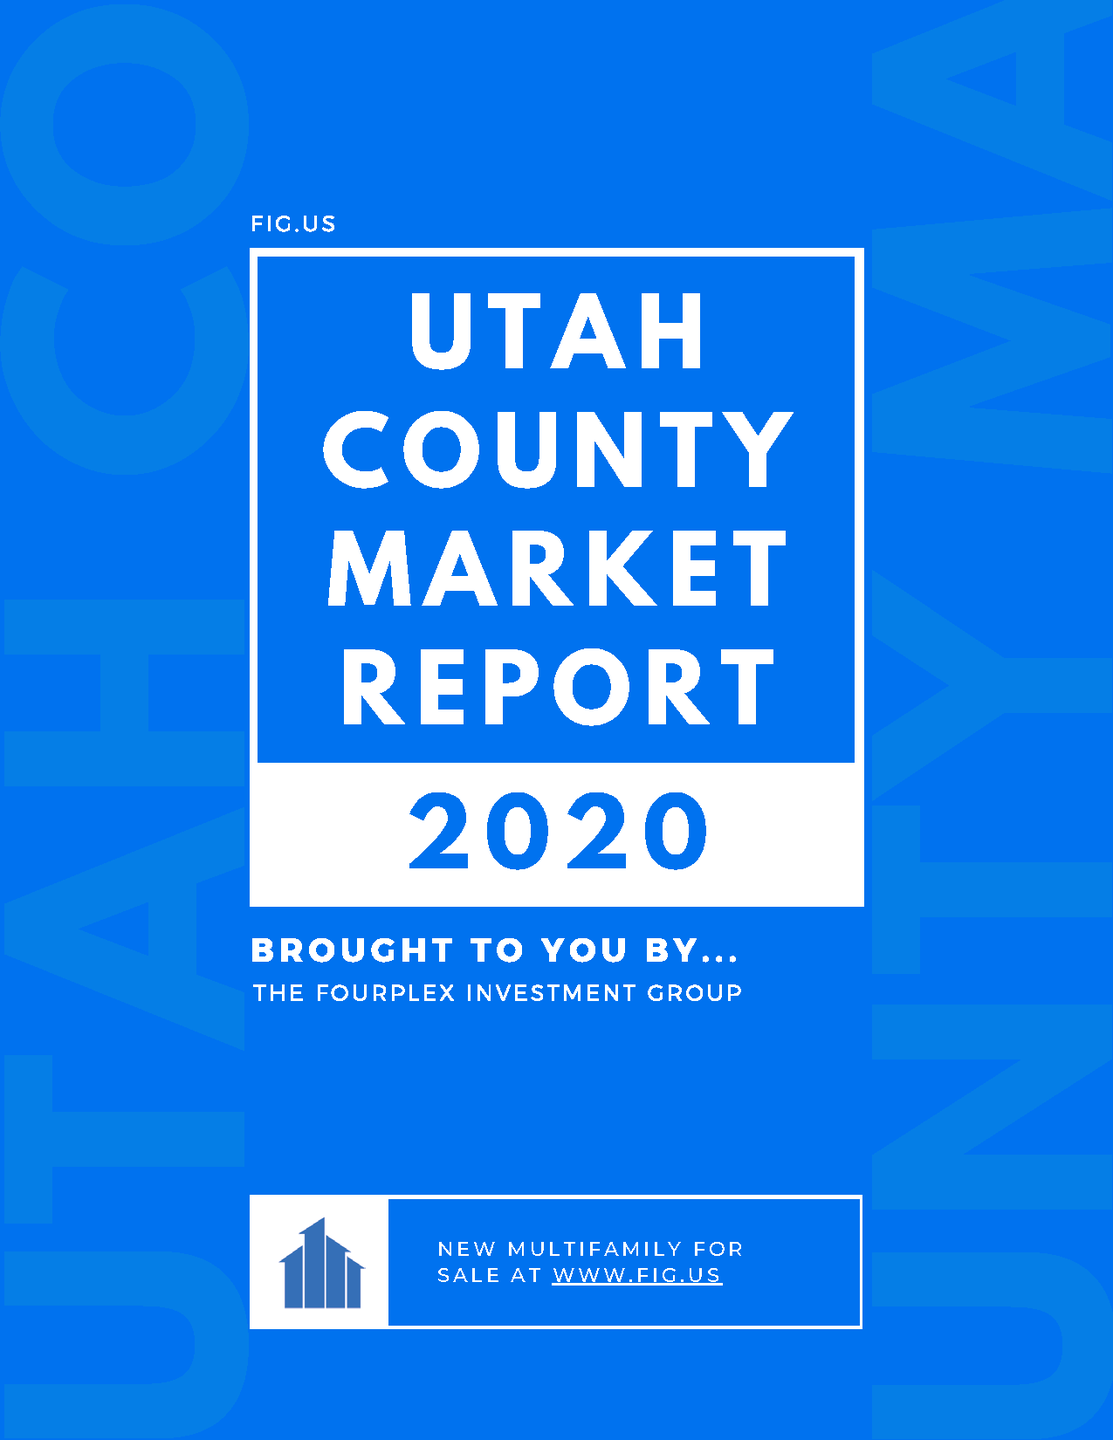 Utah County Multifamily Market Report